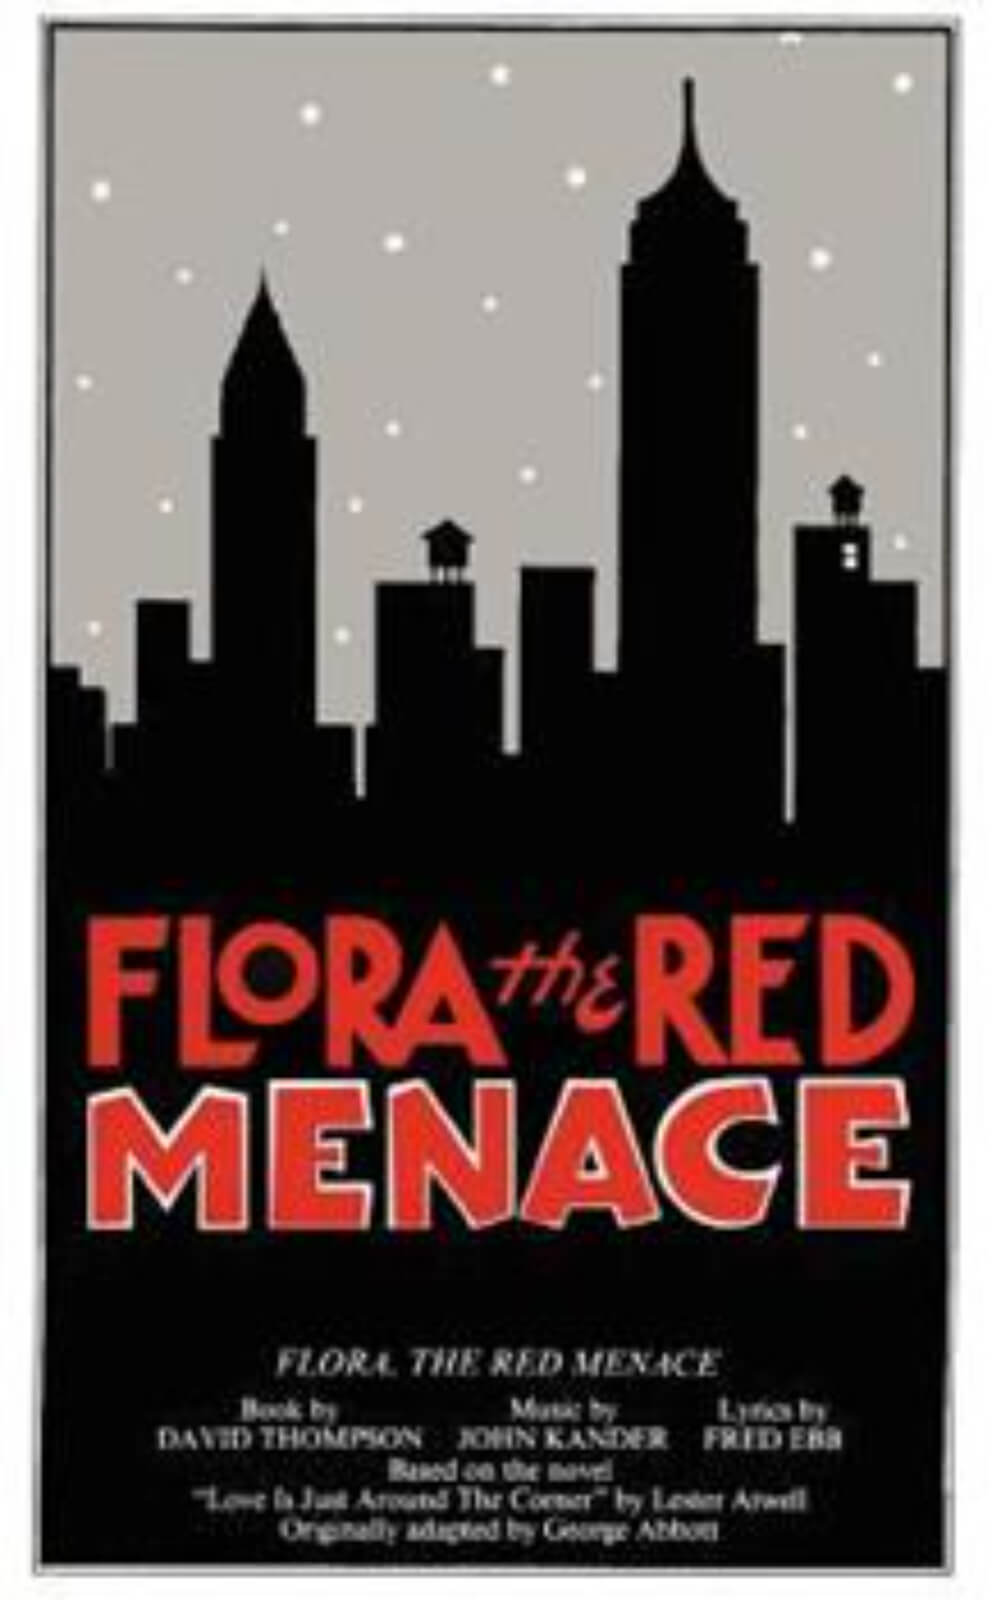 A poster with silhouetted skyline of New York City and red logo for Flora the Red Menace